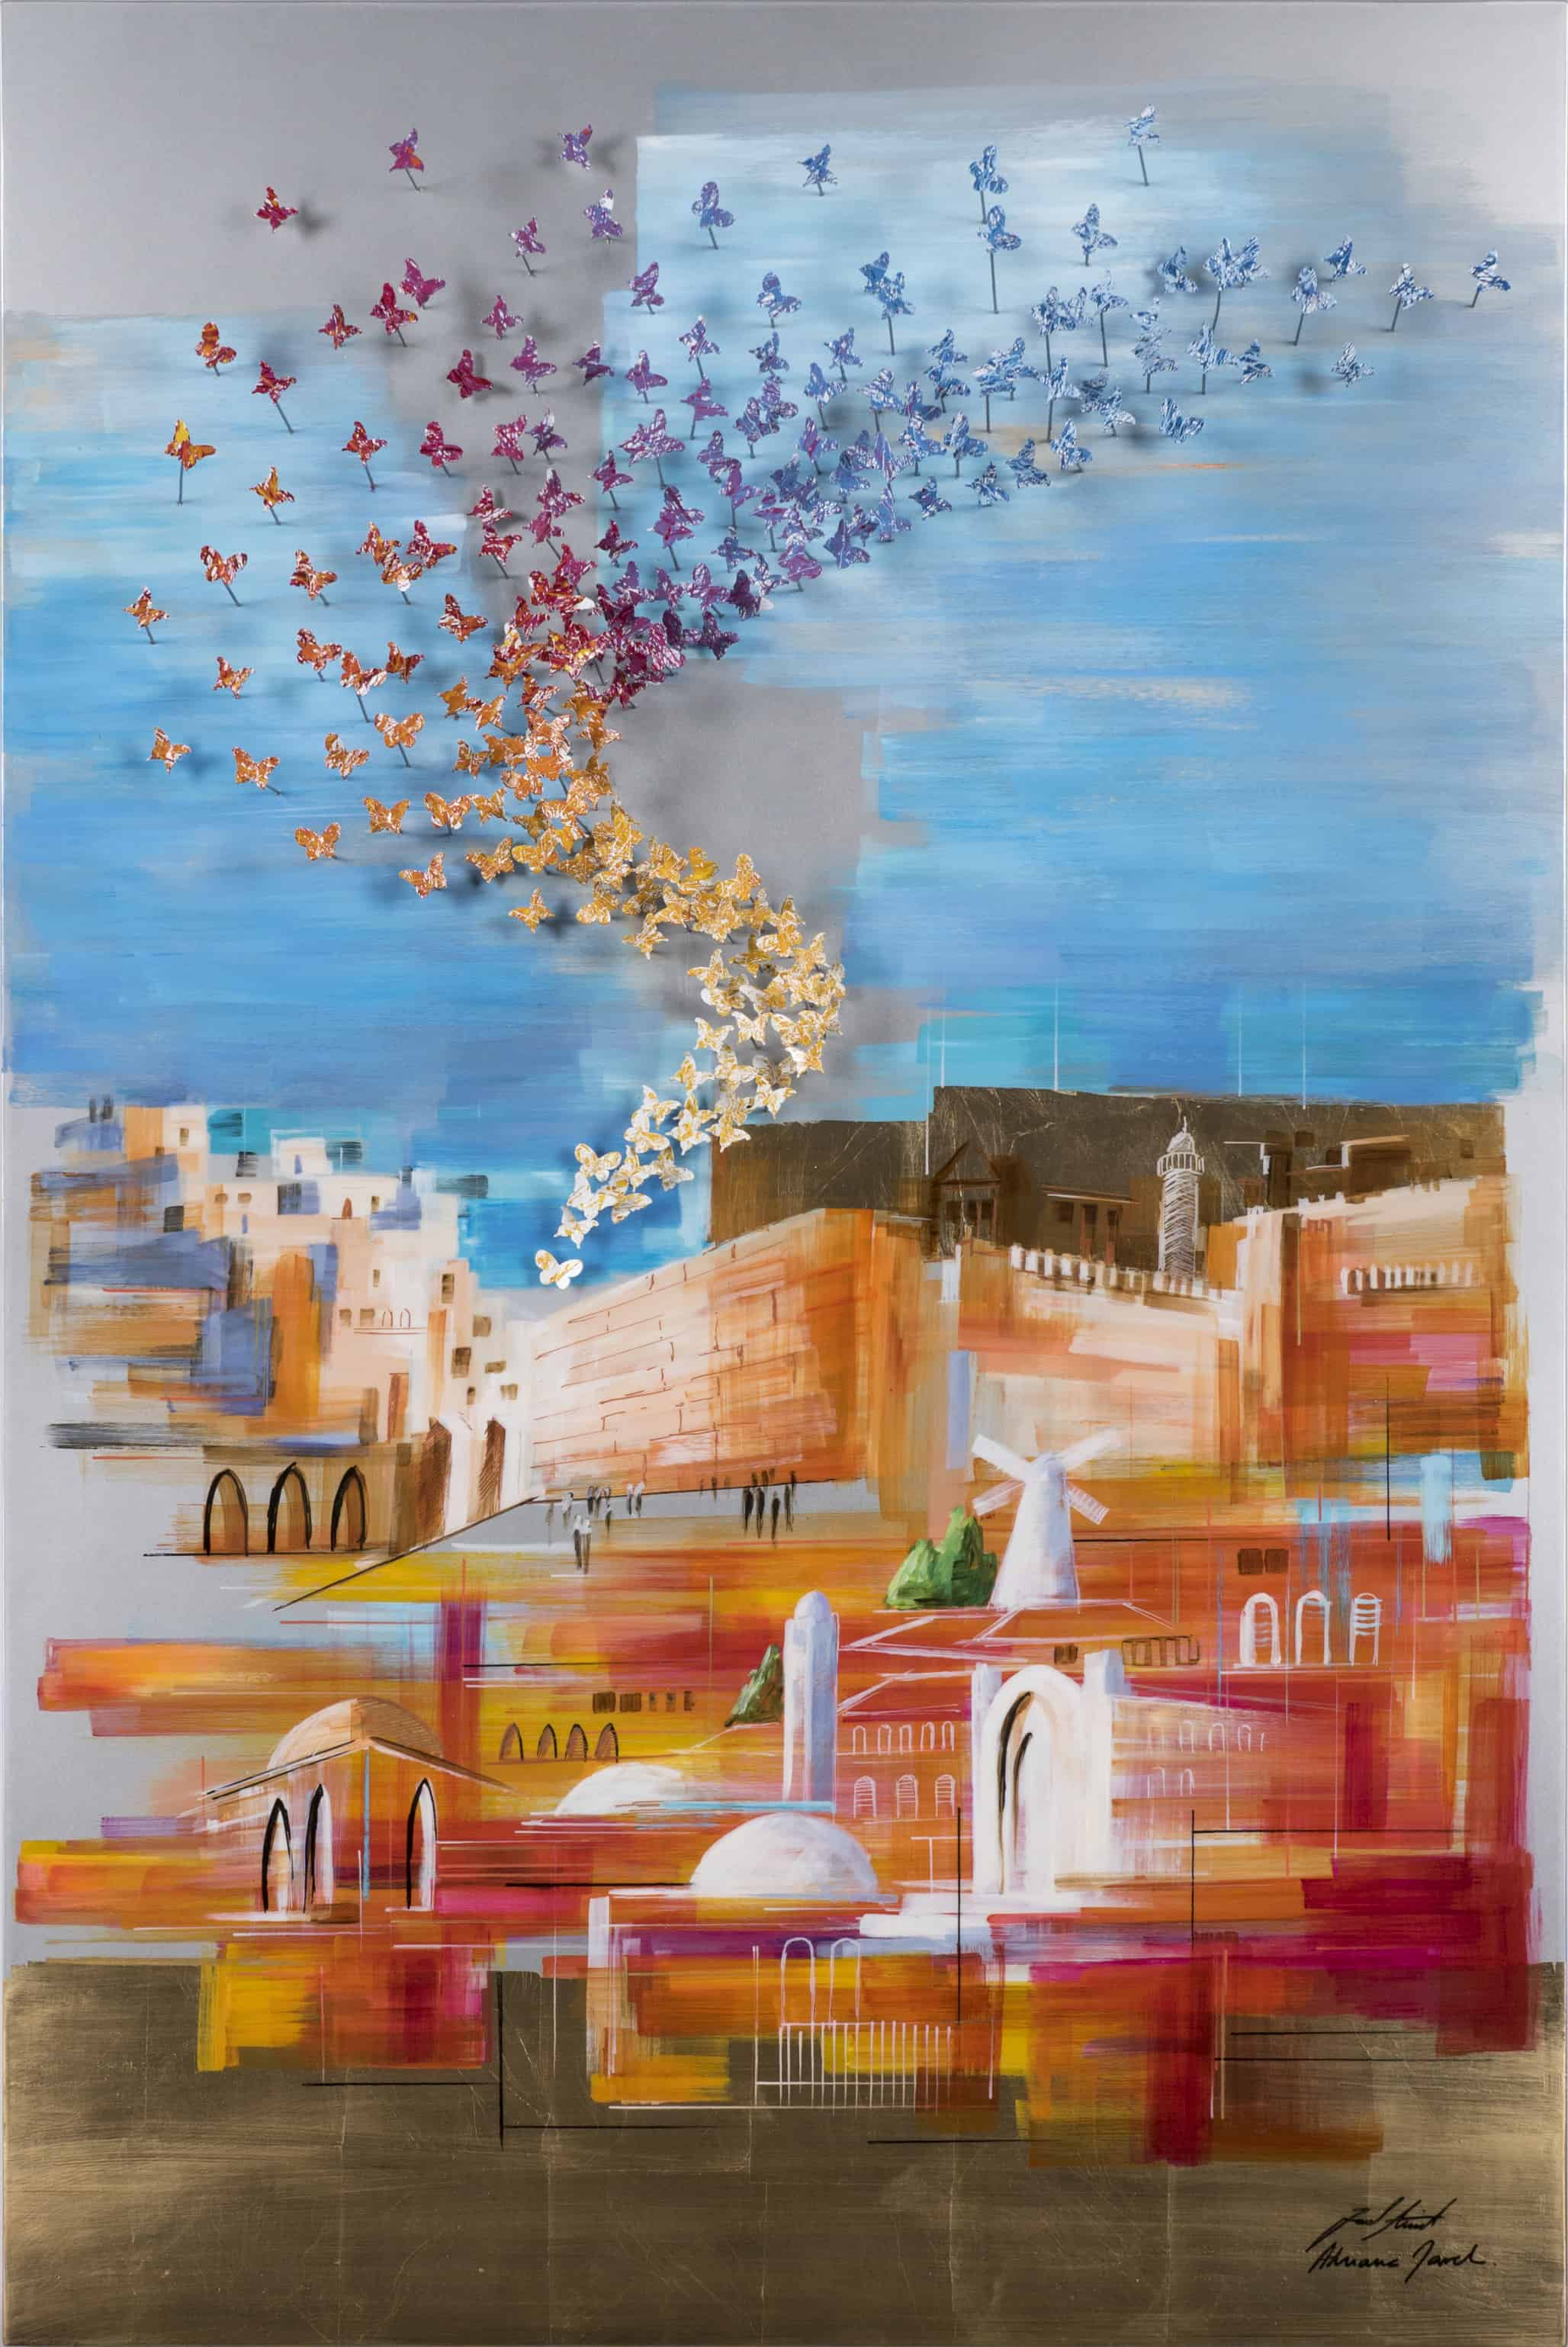 Flying Over the Wall 150x100 cm